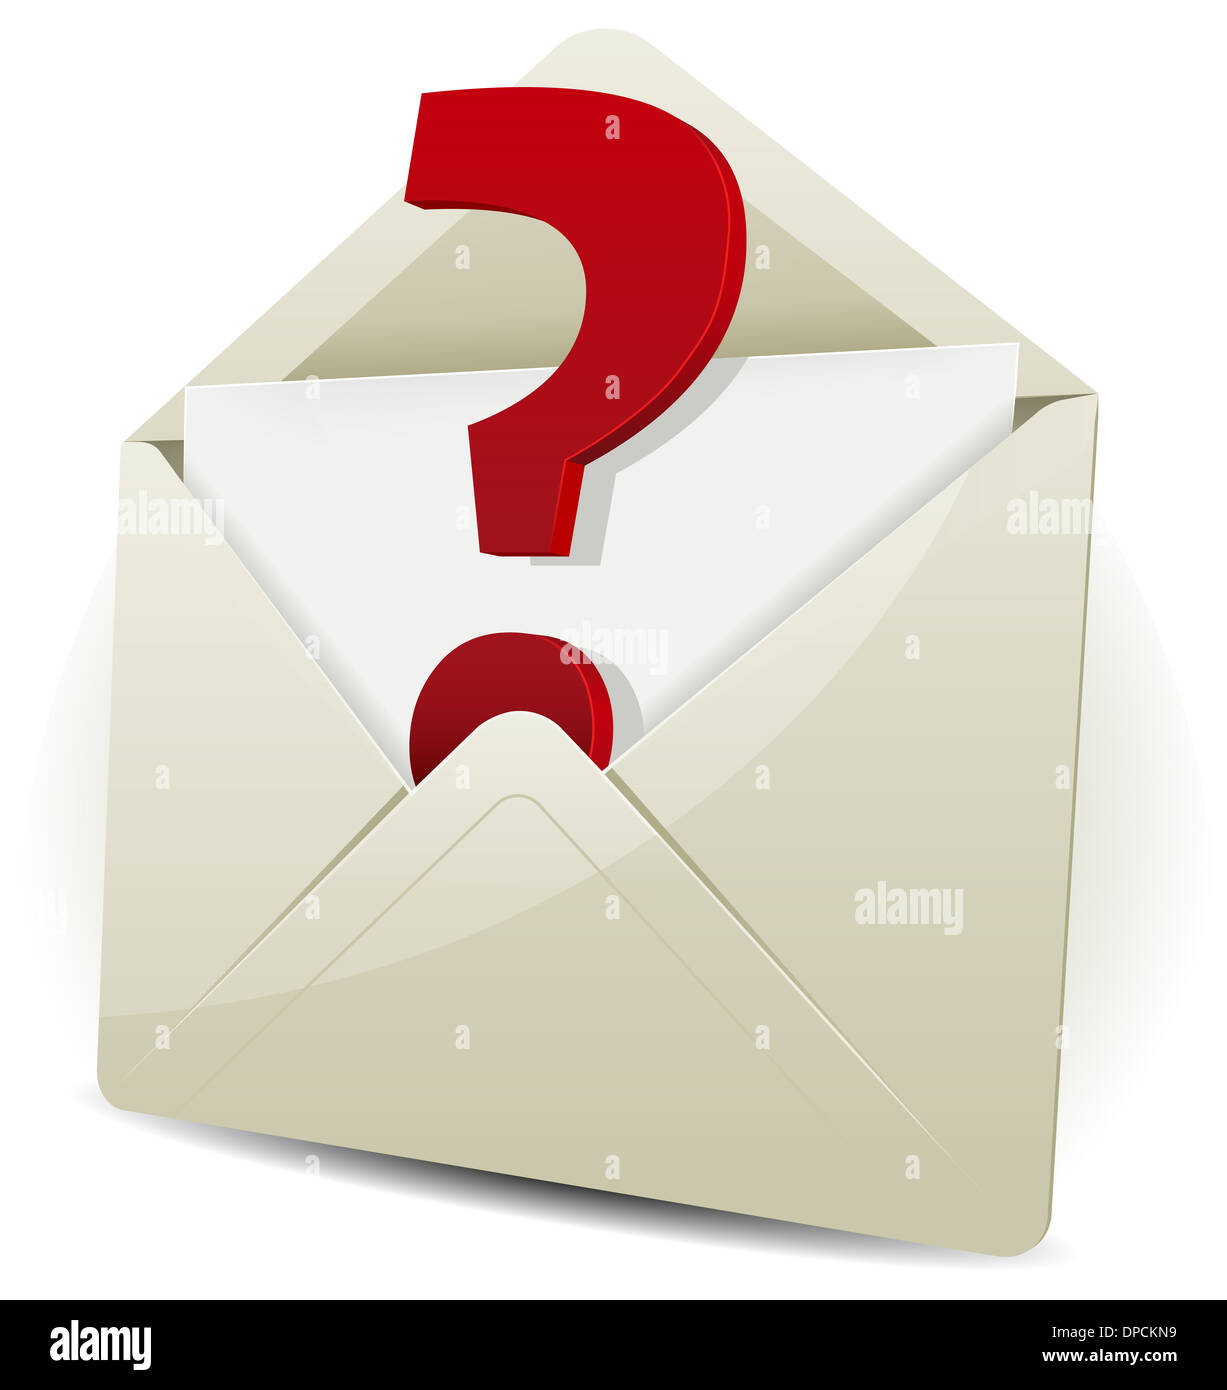 Illustration Of An Email Icon Envelope With Question Mark Symbol